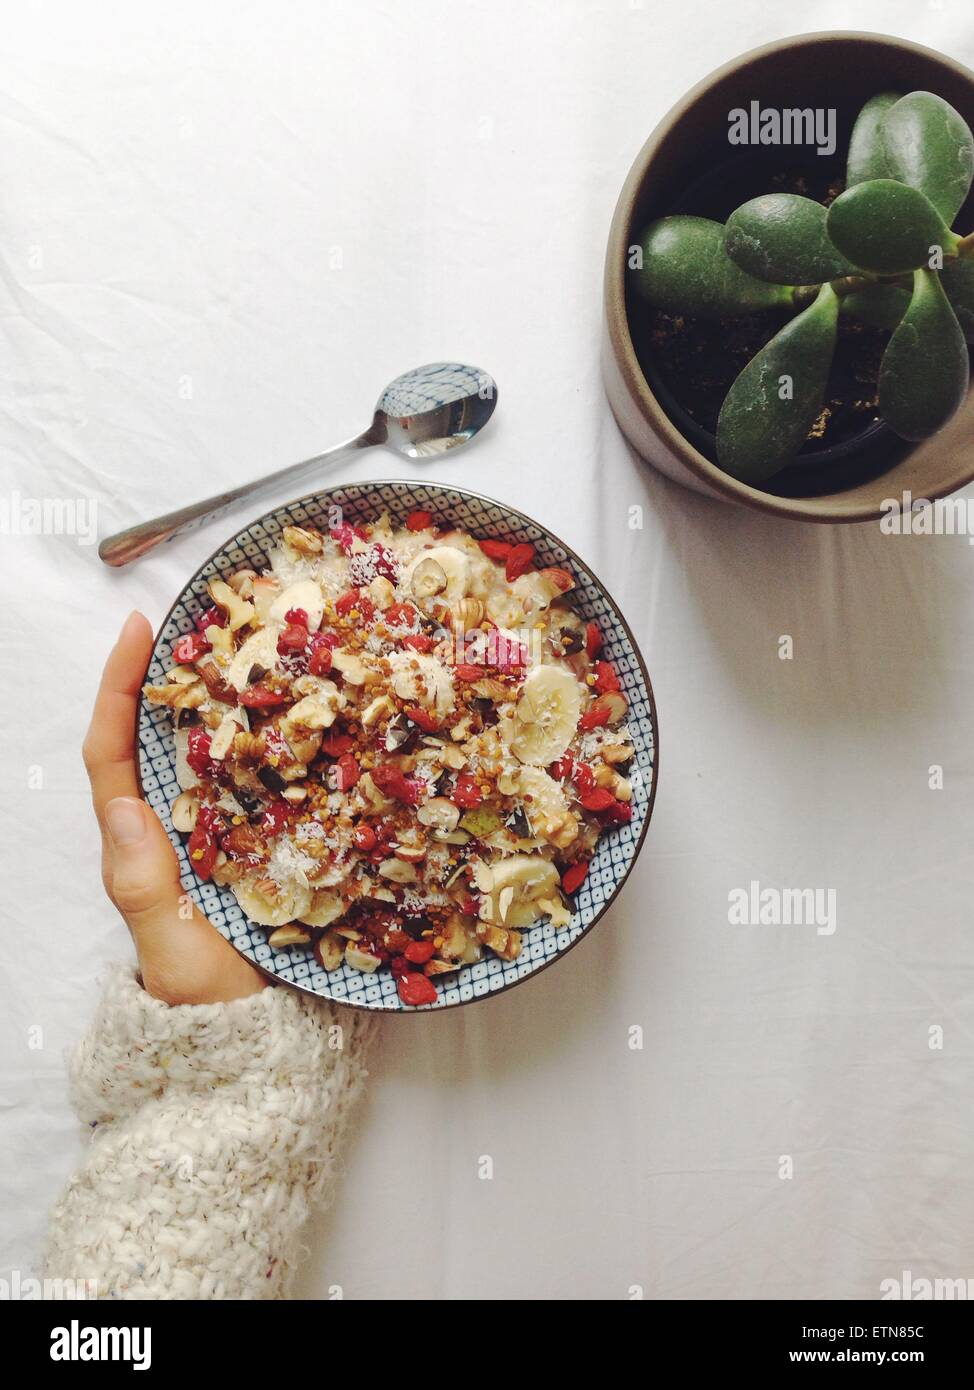 Oatmeal with superfood toppings - Stock Image